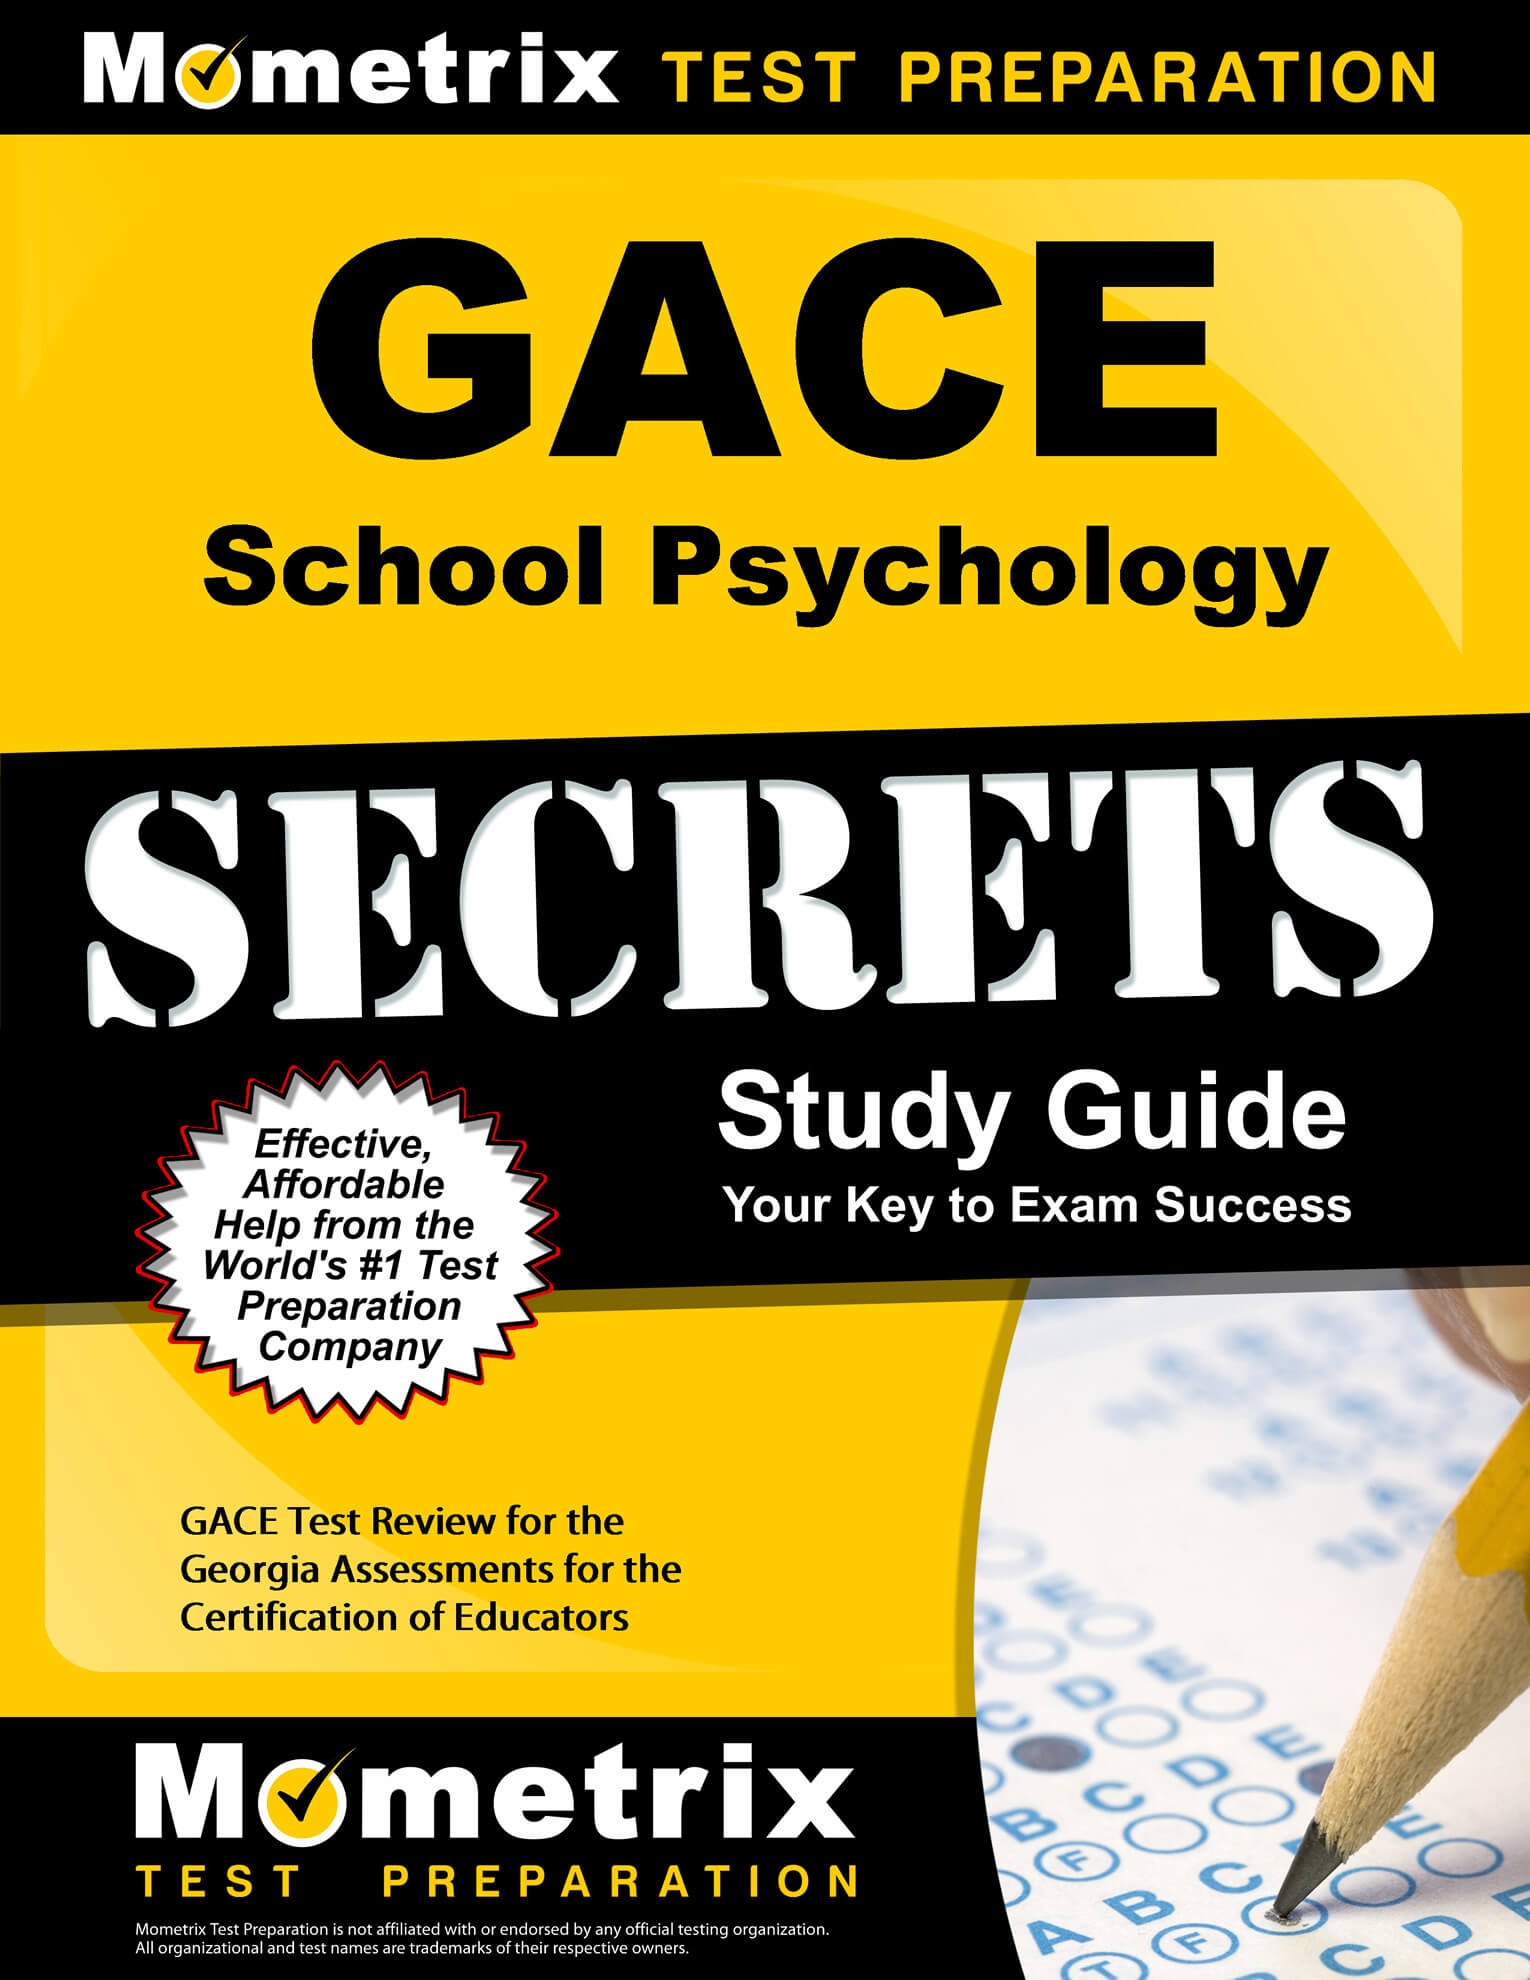 GACE School Psychology Study Guide